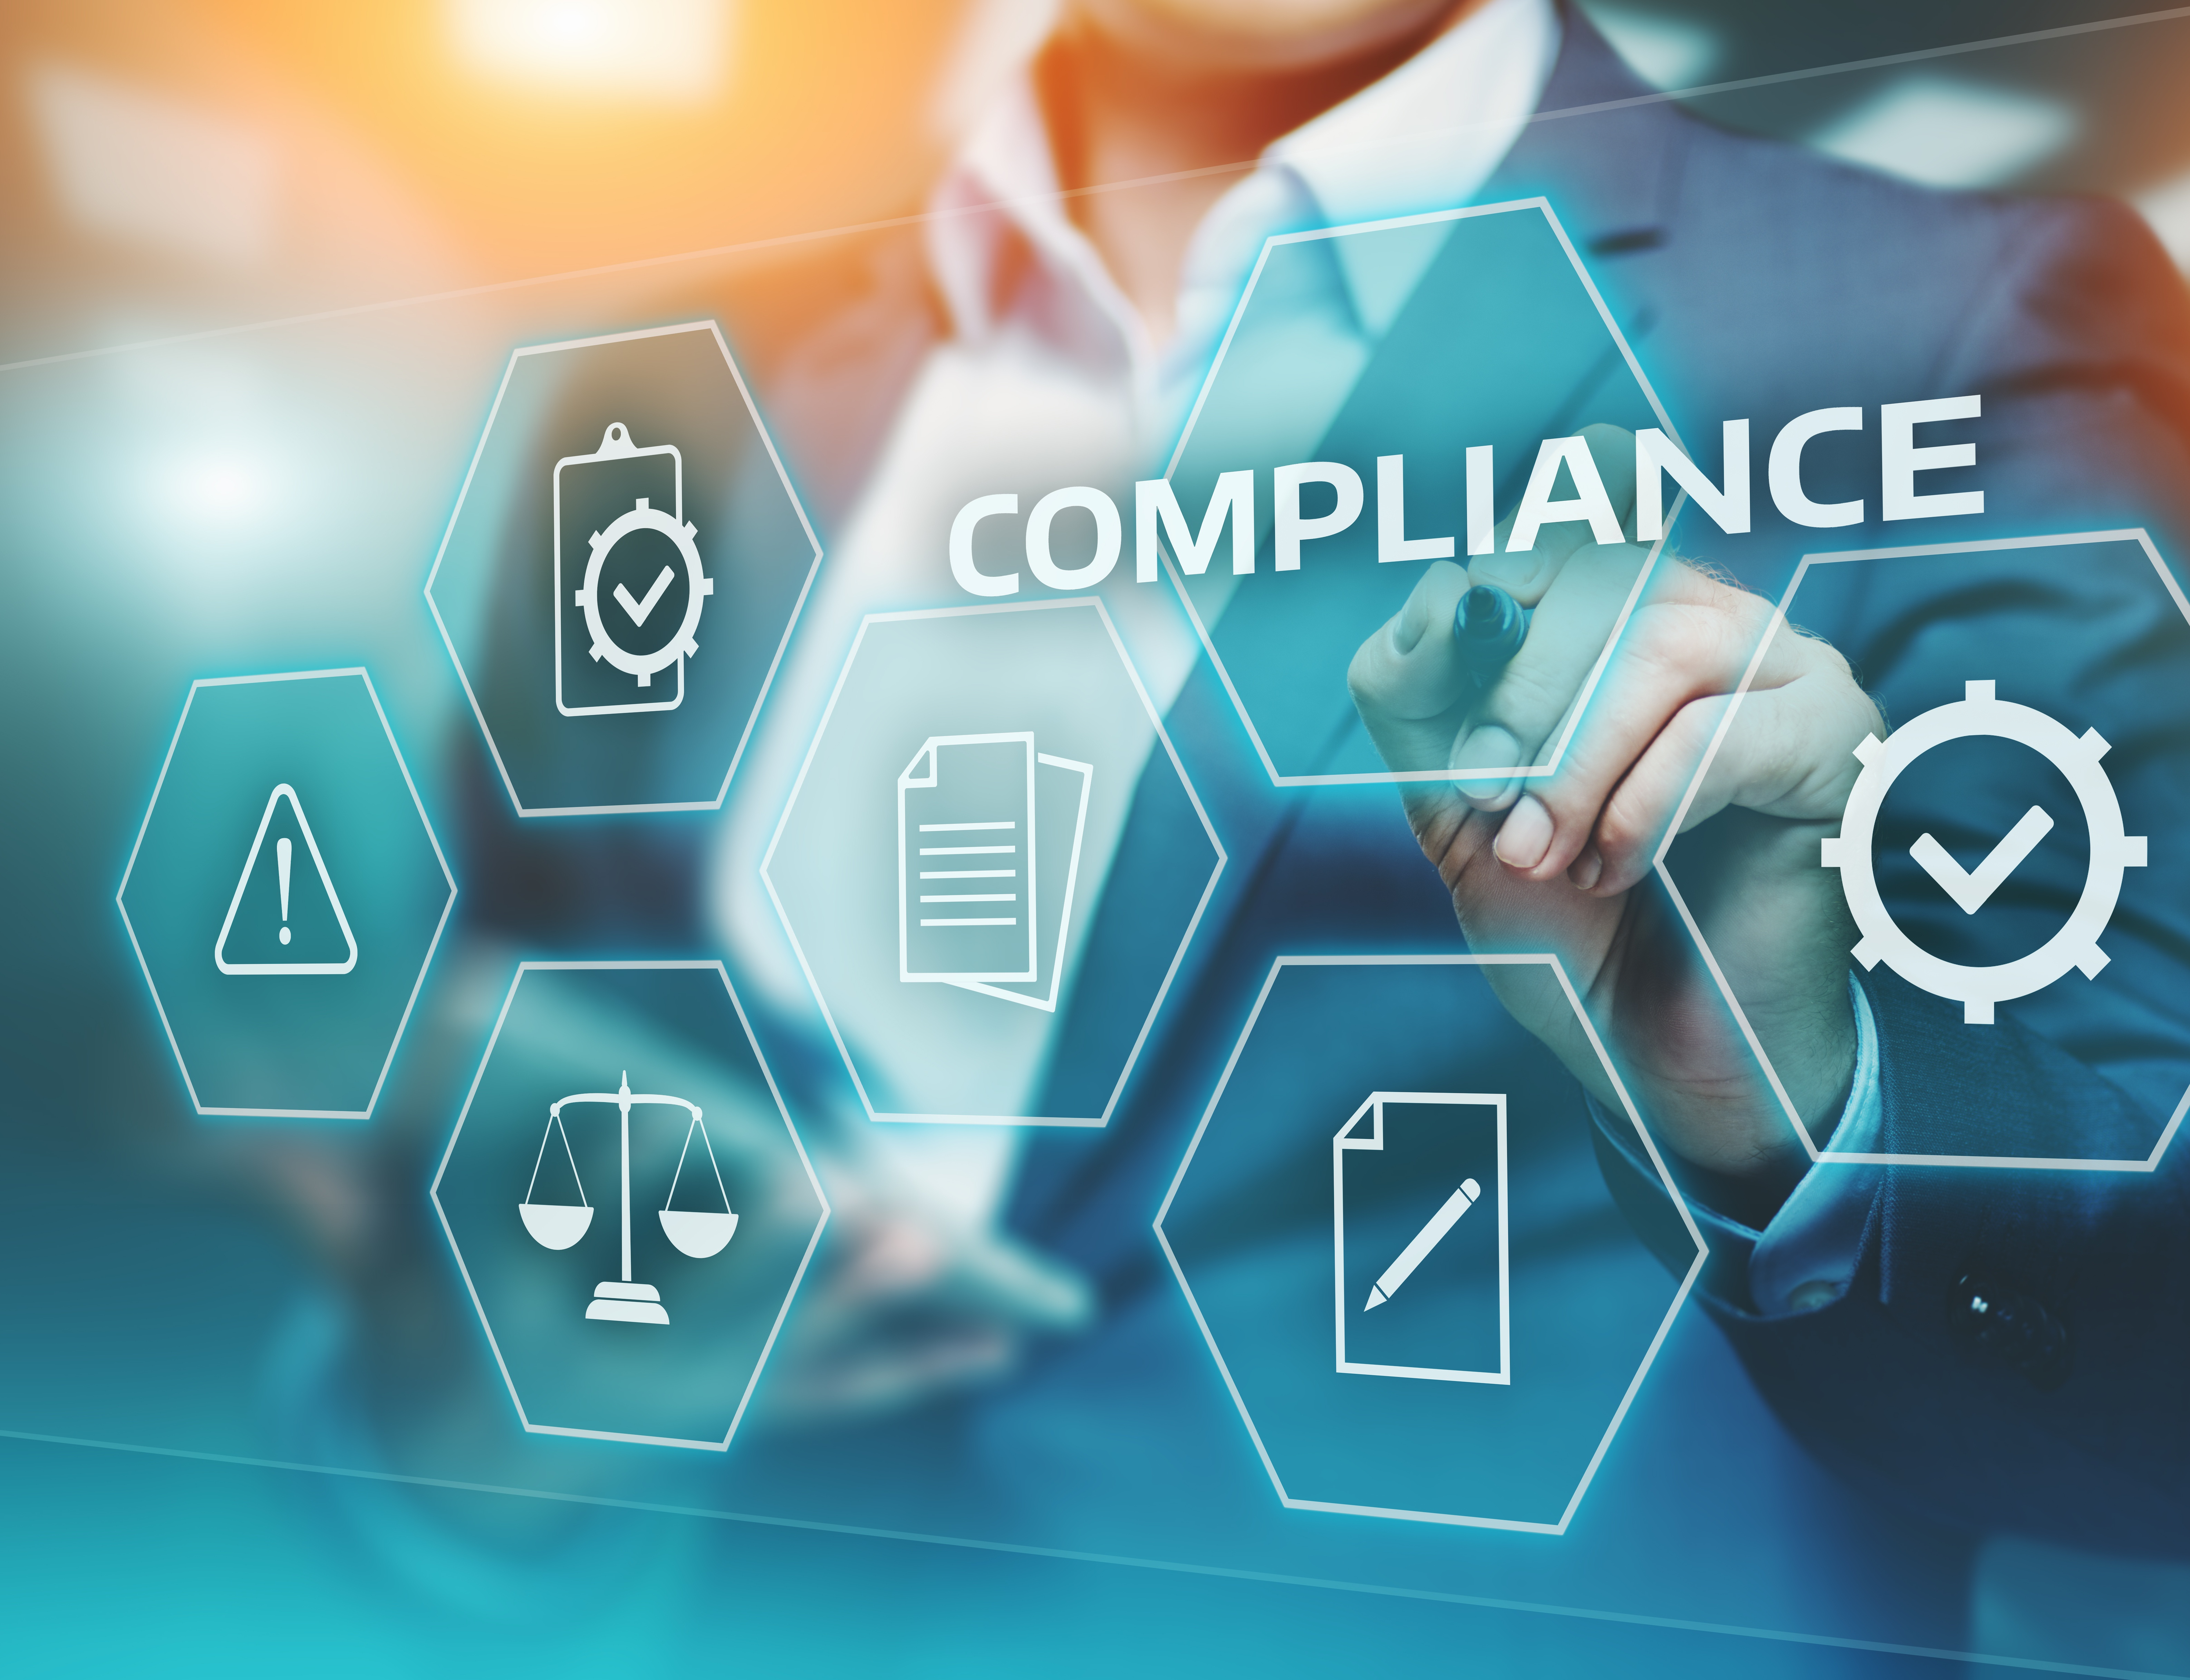 Health & Safety Management Software in the Cloud